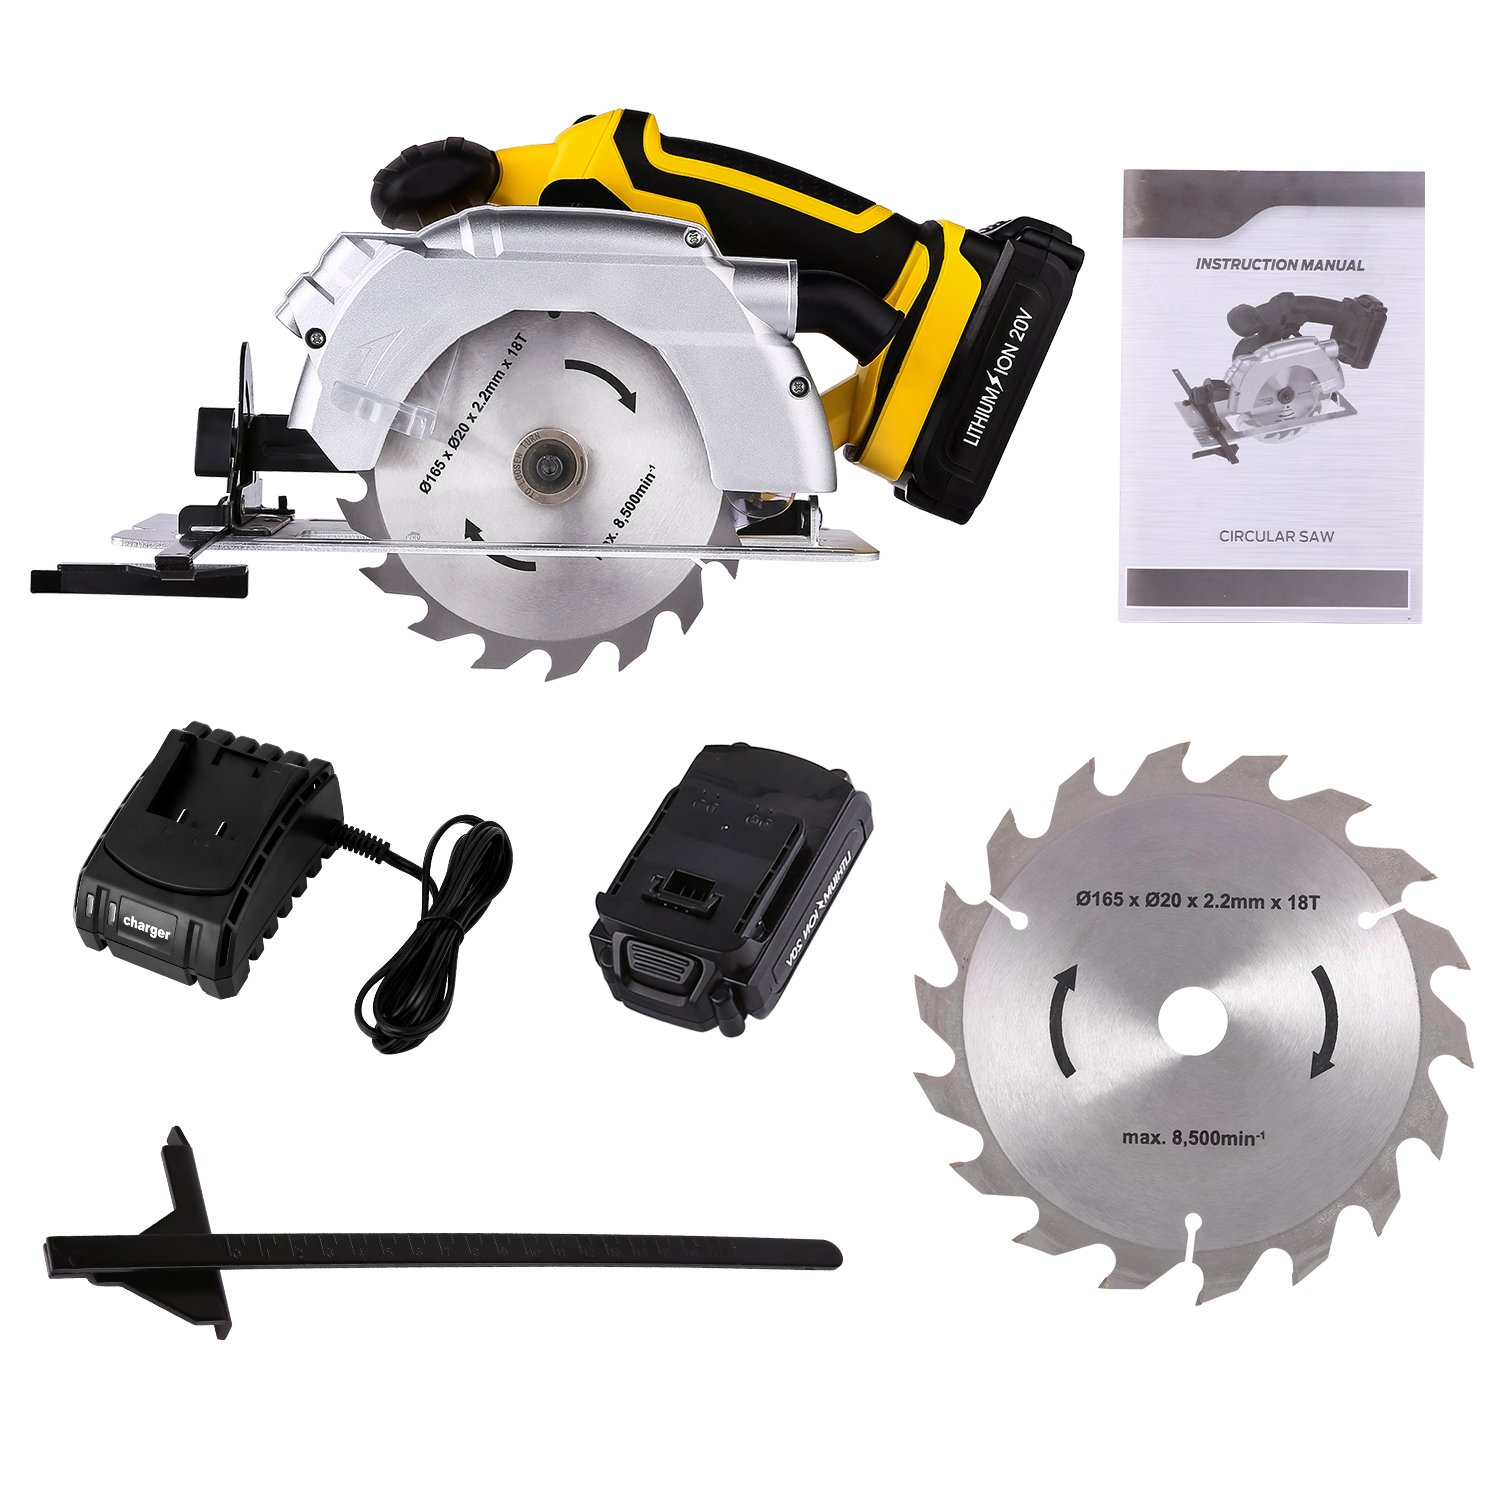 Benlet 20V Li-ion Operated Electric Cordless Circular Saw 6 1/2inch, MAX Dry Cut Saw Blades Machine w/Measured Ruler for Cutting Wood (Yellow)